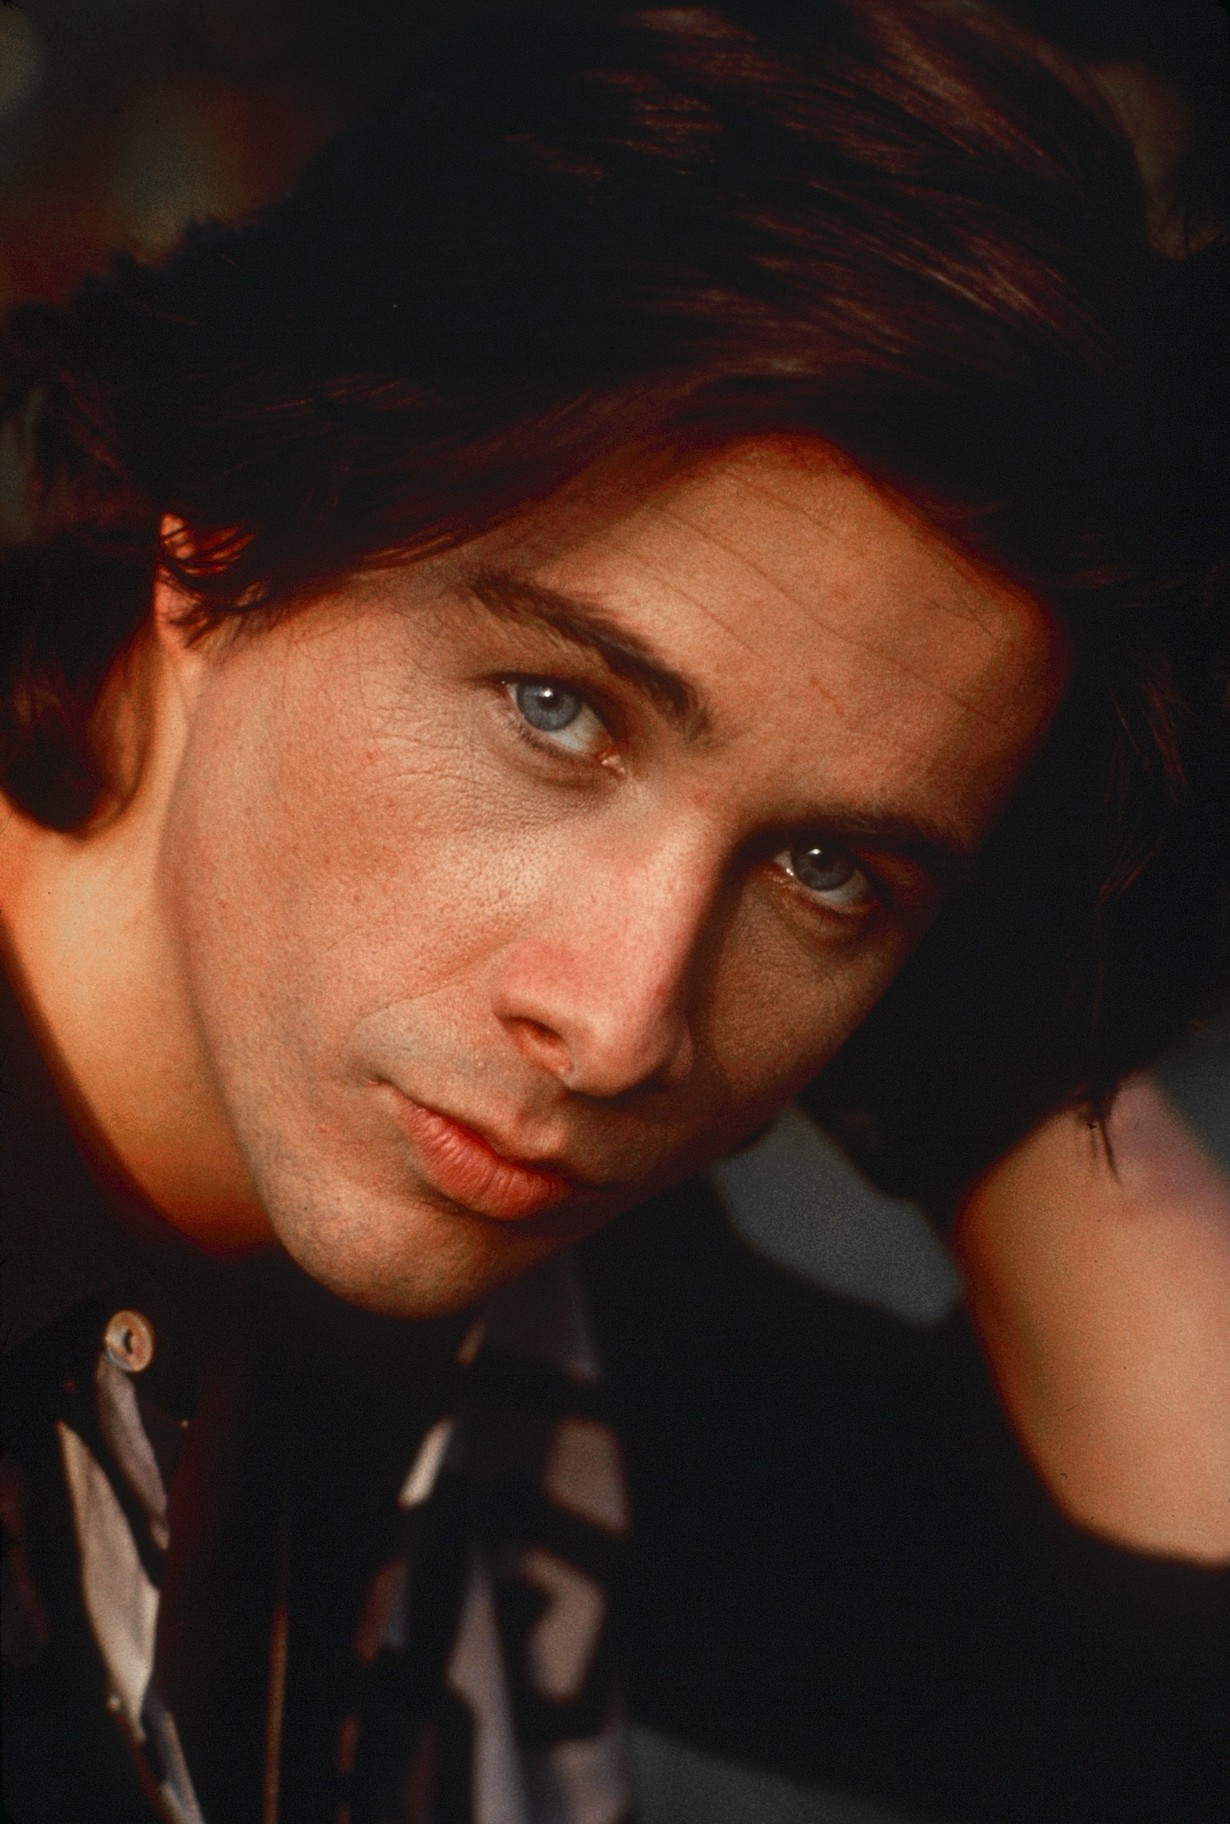 DAYS OF OUR LIVES, michael easton tanner nbc ec